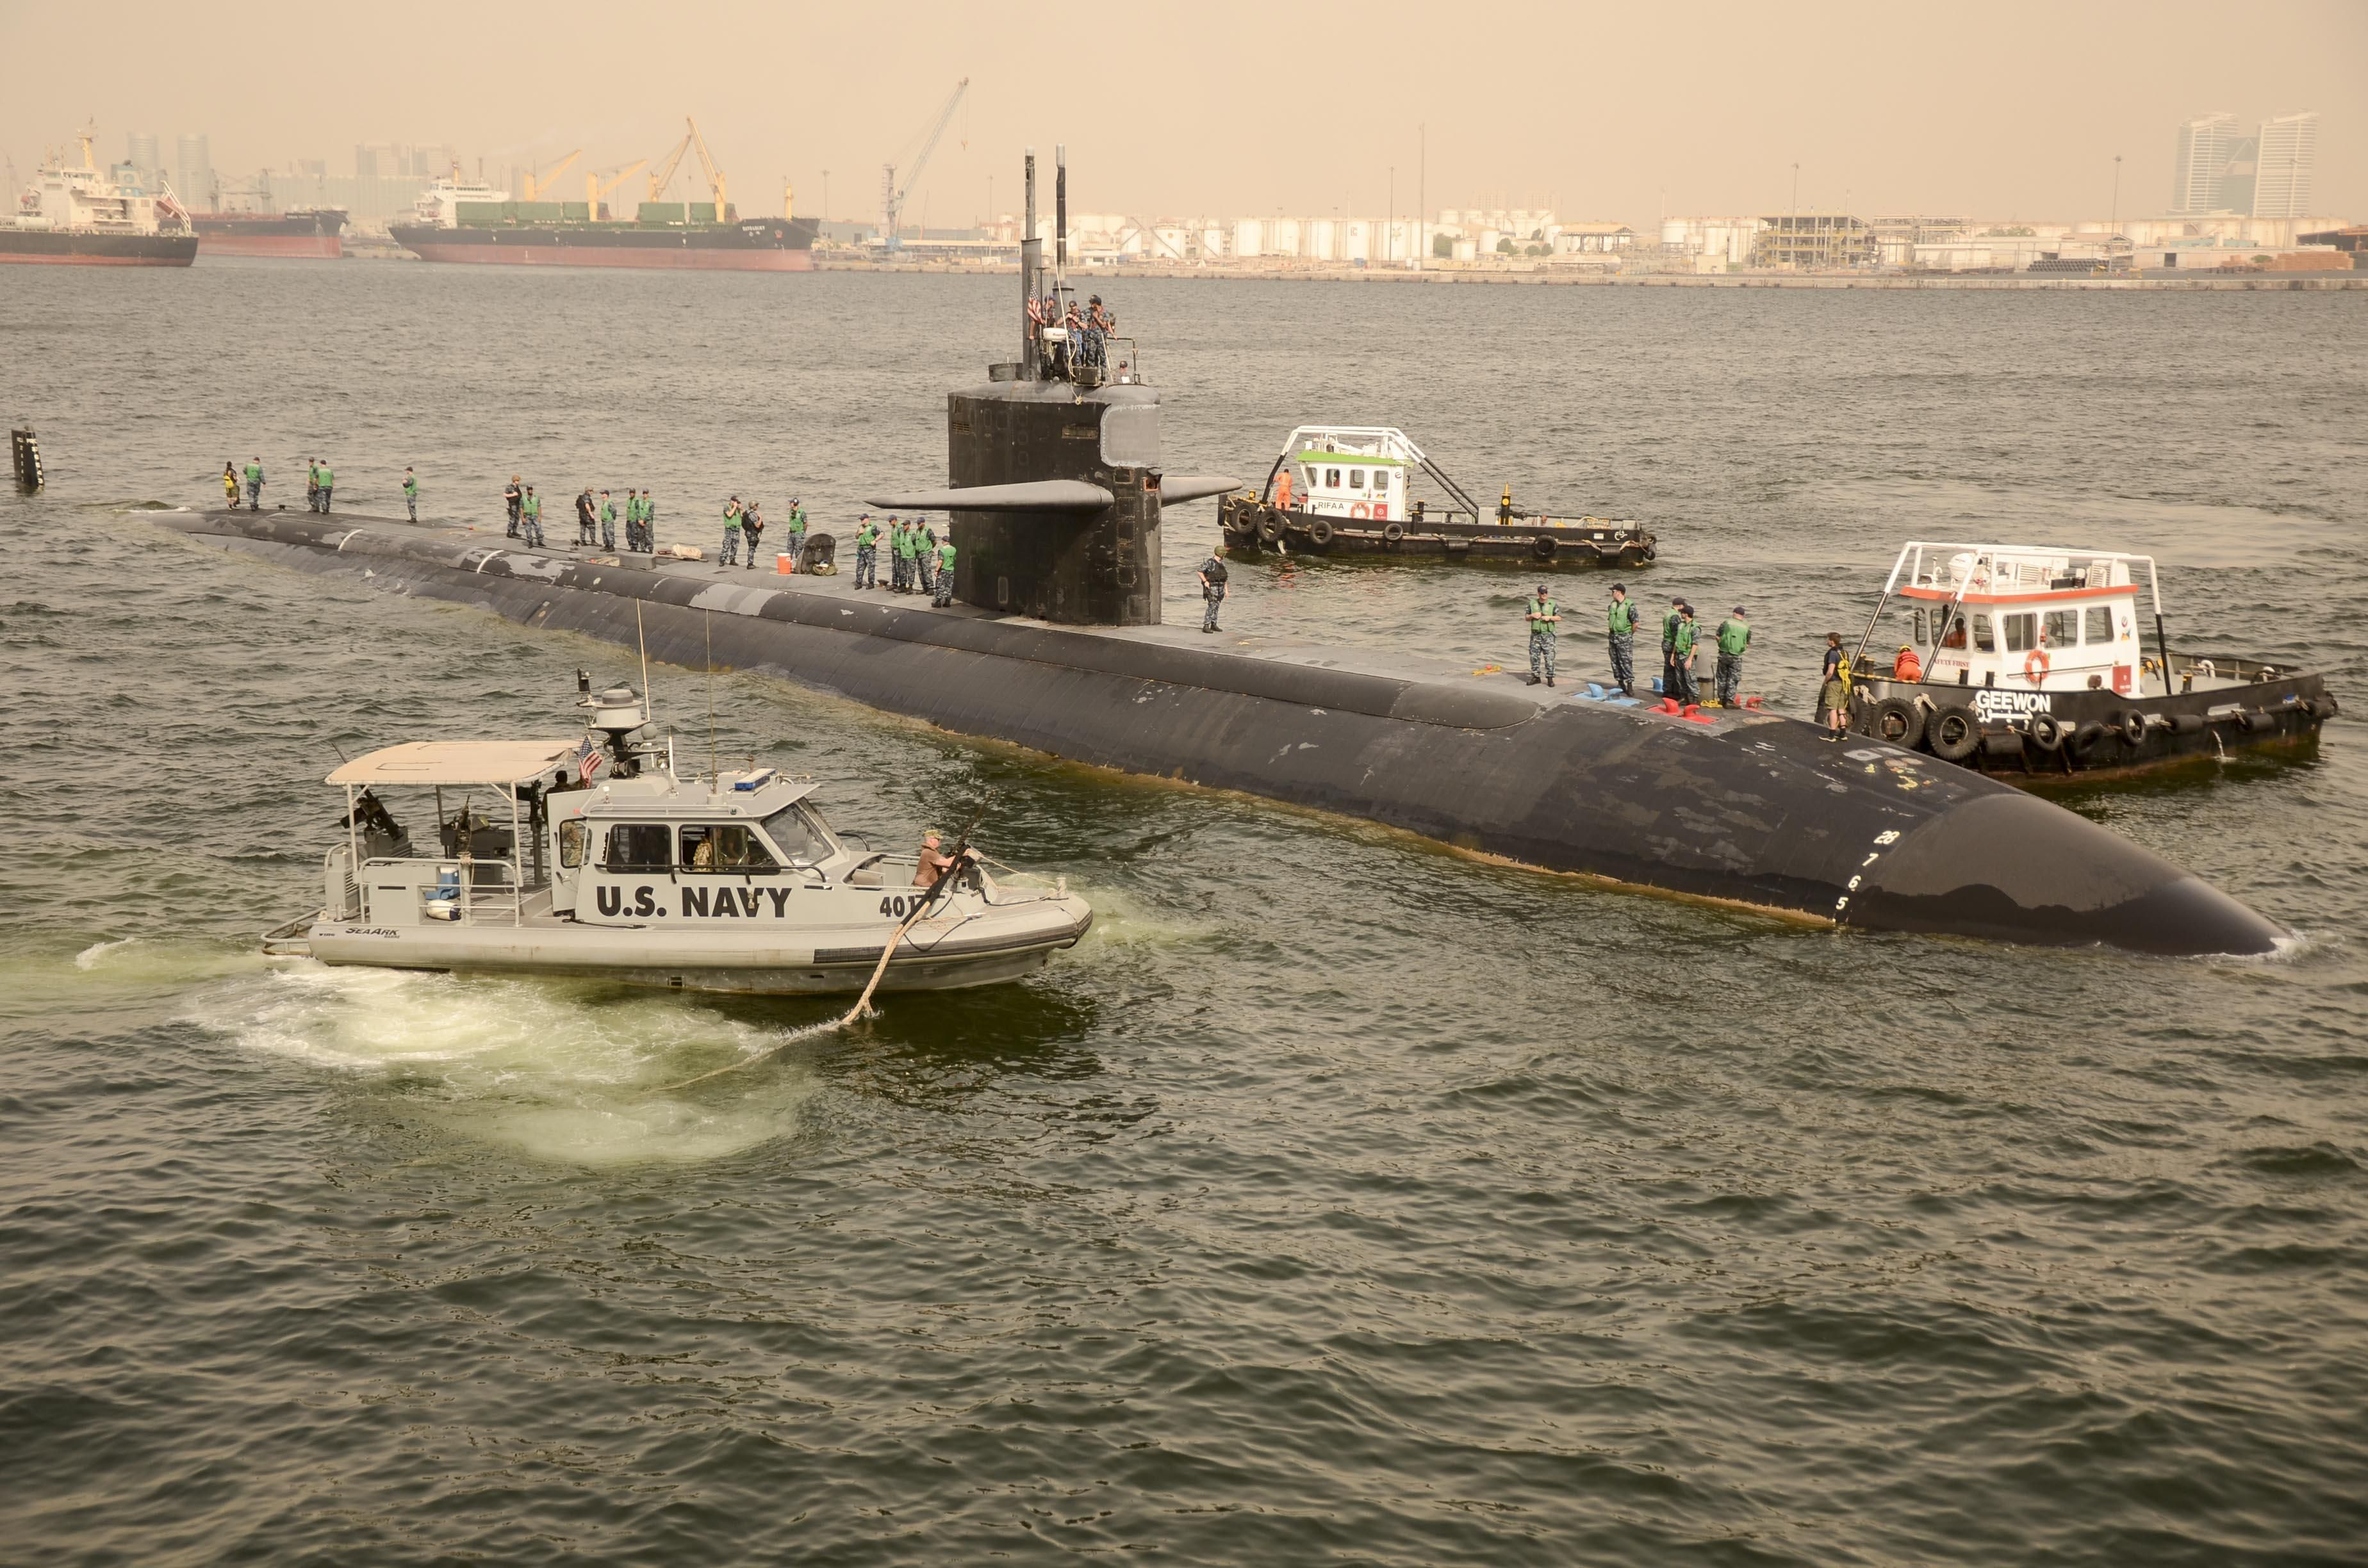 SUB ~ USS Dallas (SSN-700) is escorted to pull alongside the submarine tender USS Frank Cable (AS-40) while pulling into port. Jebel Ali, United Arab Emerites. Aug. 2016. ~ BFD